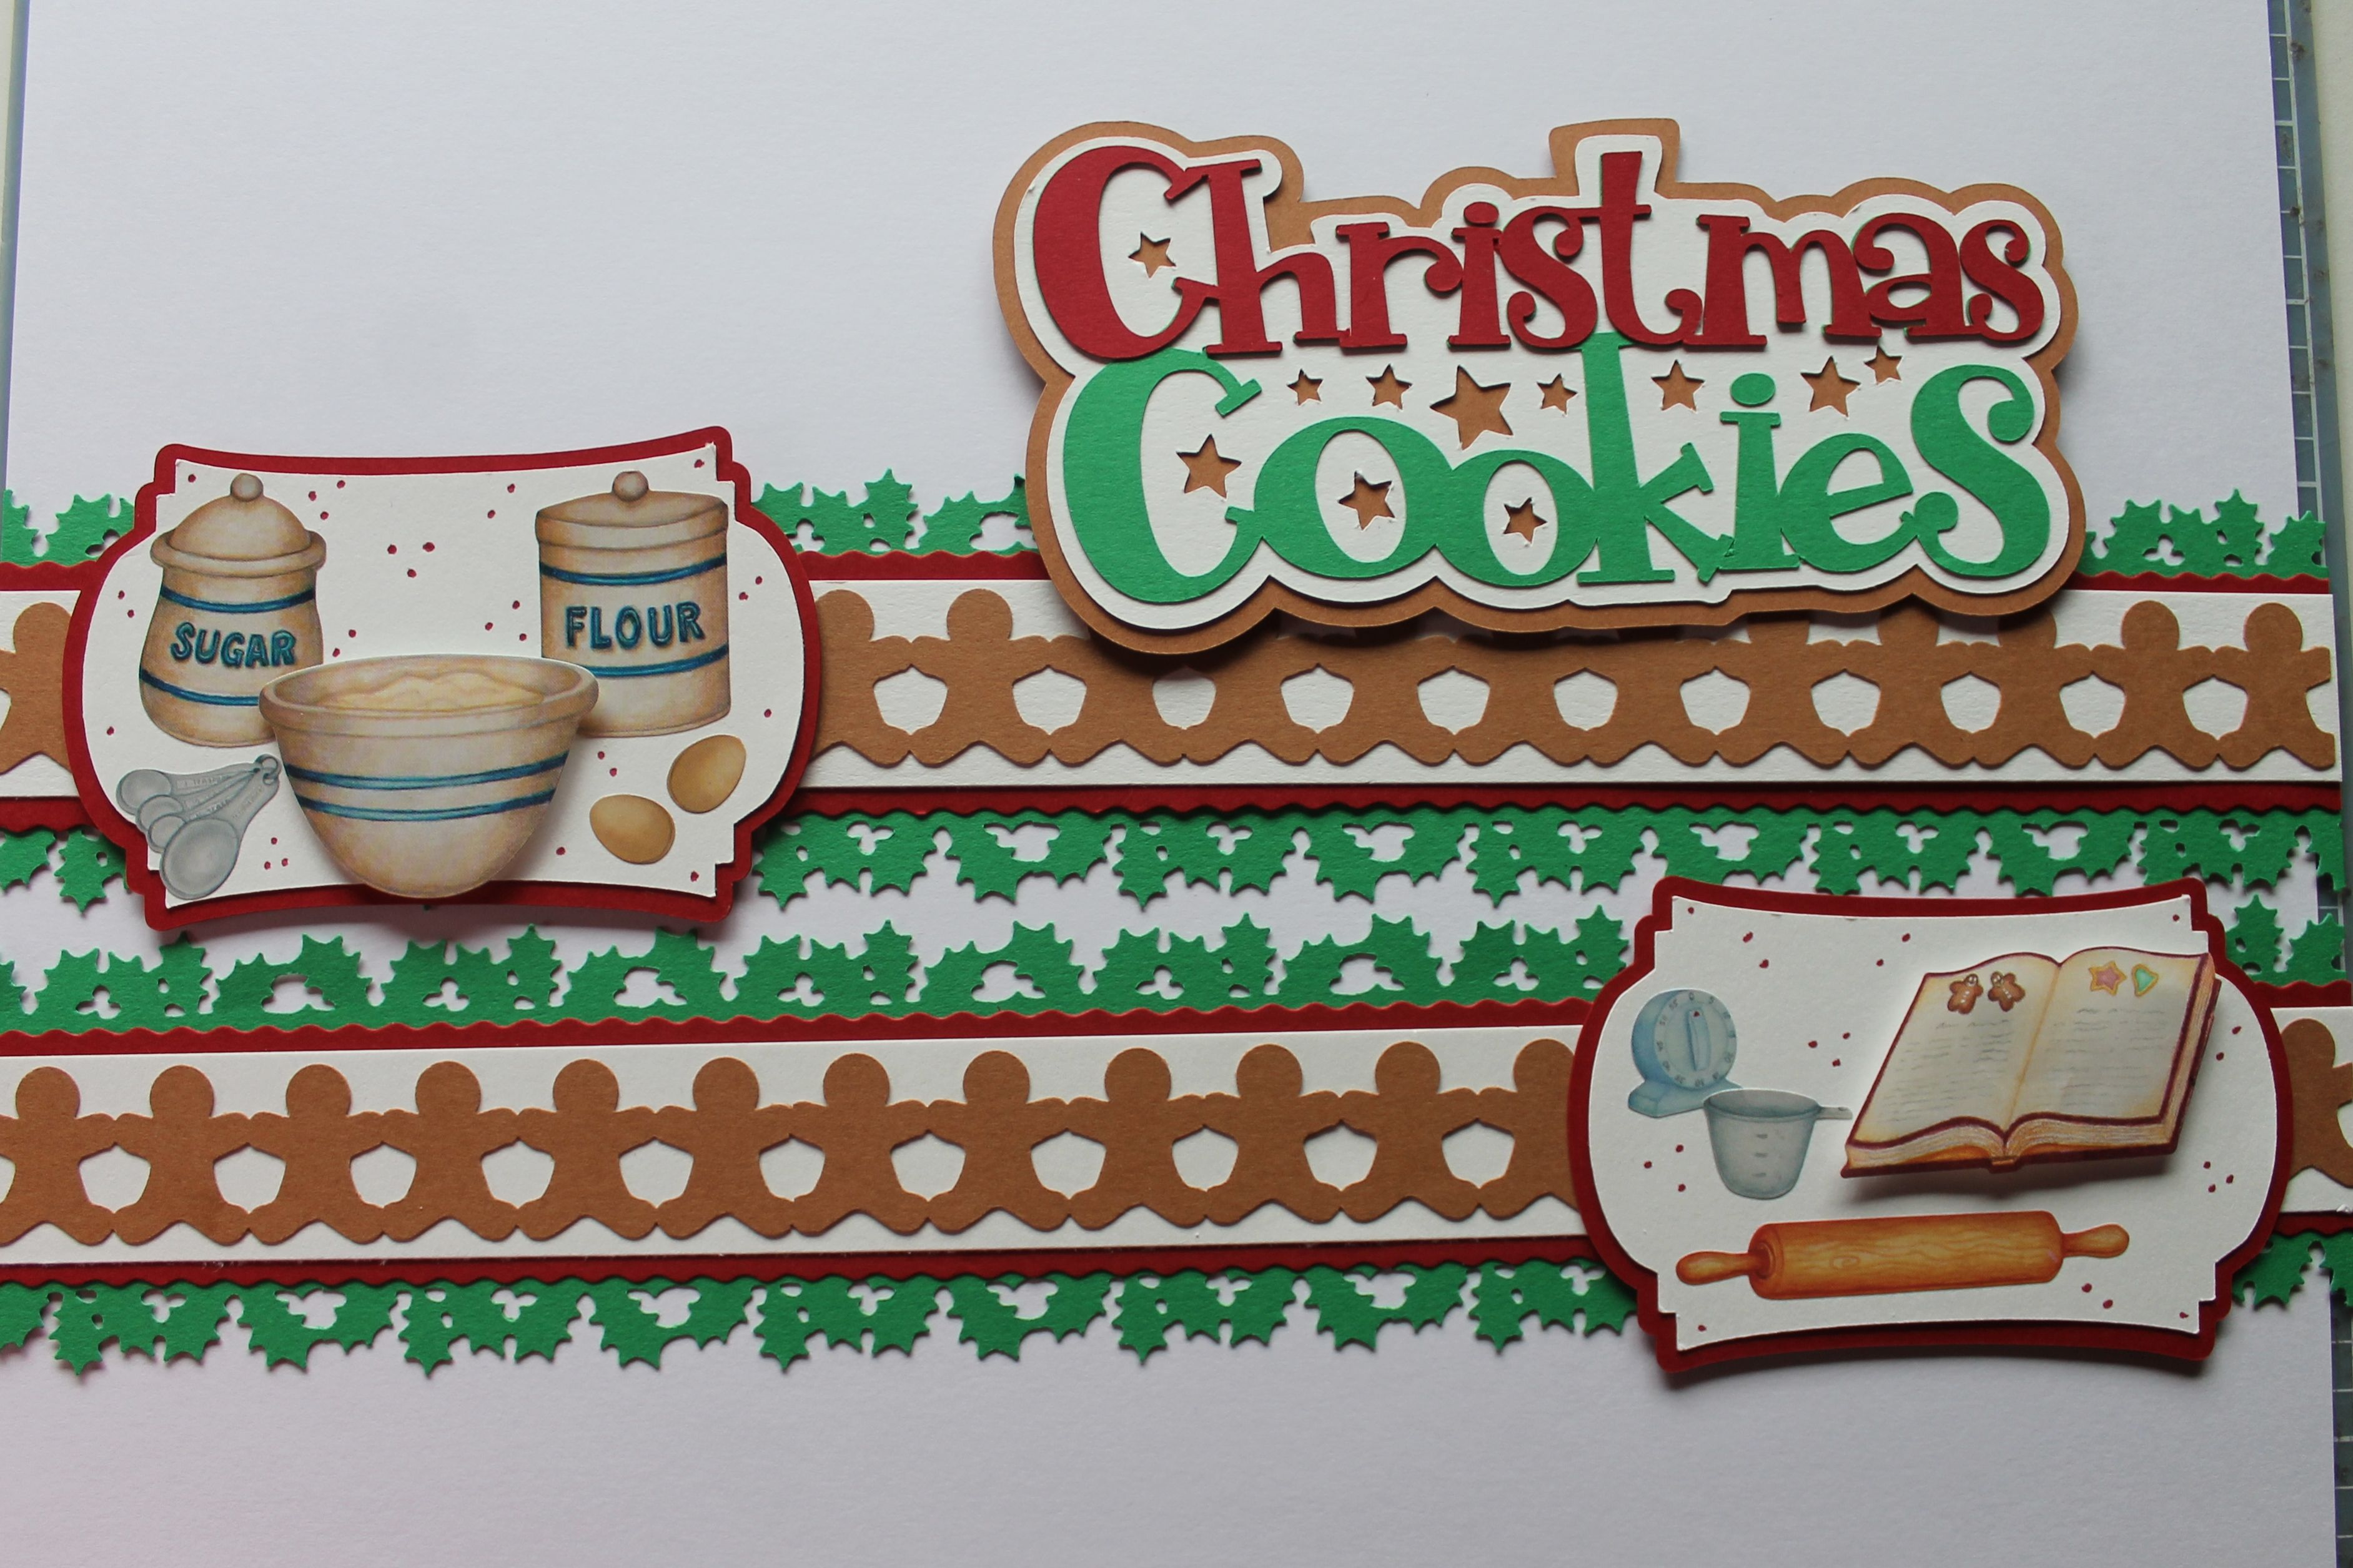 Had to try my new Holly border punch with the Christmas Cookie stickers I am trying to use up.